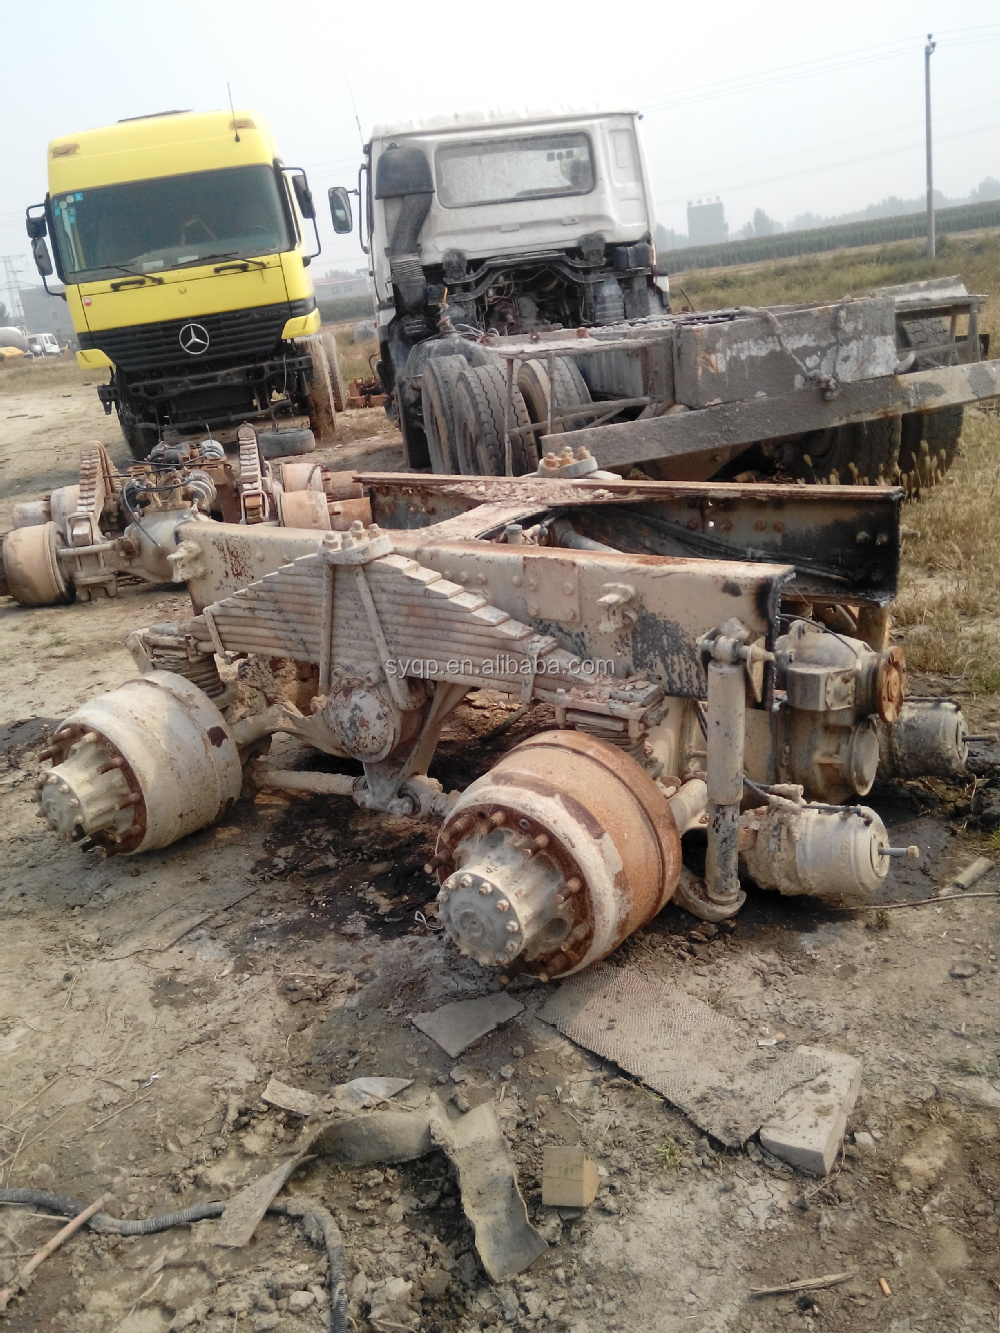 Used Volvo Rear Axle Ctev87 And Volvo Complete Truck Fh12 In Sale - Buy Used Volvo Rear Axle ...